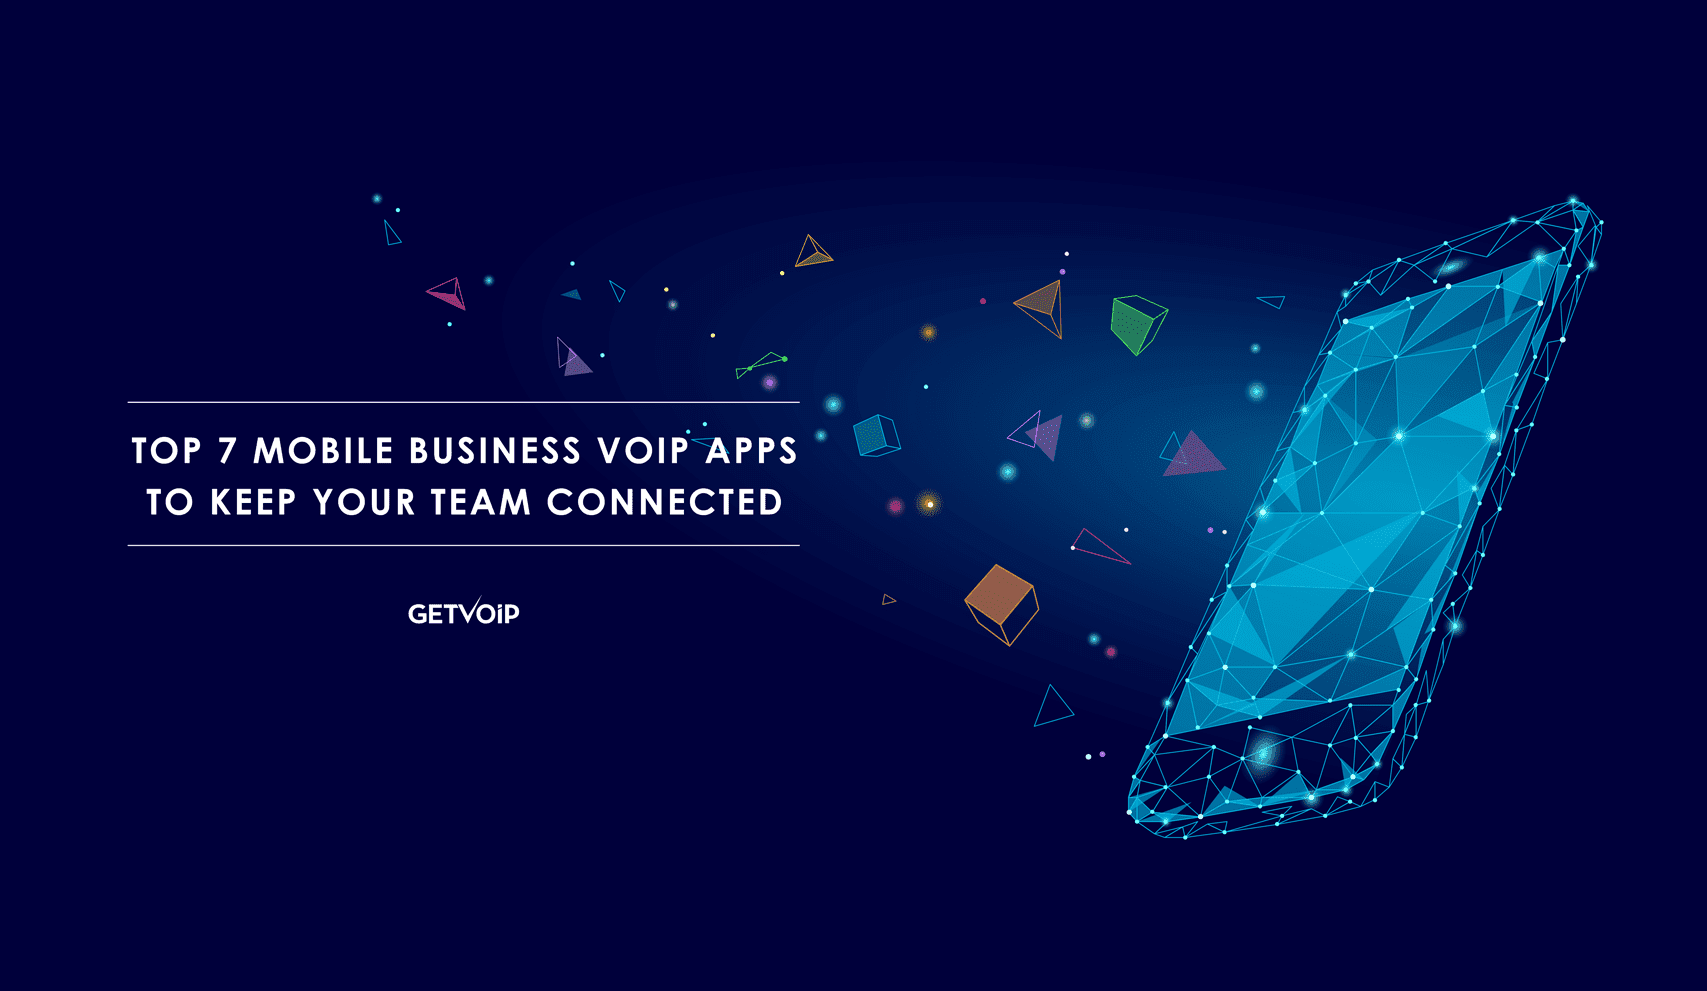 Top 7 Mobile VoIP Apps to Keep Your Business Connected [Comparison]